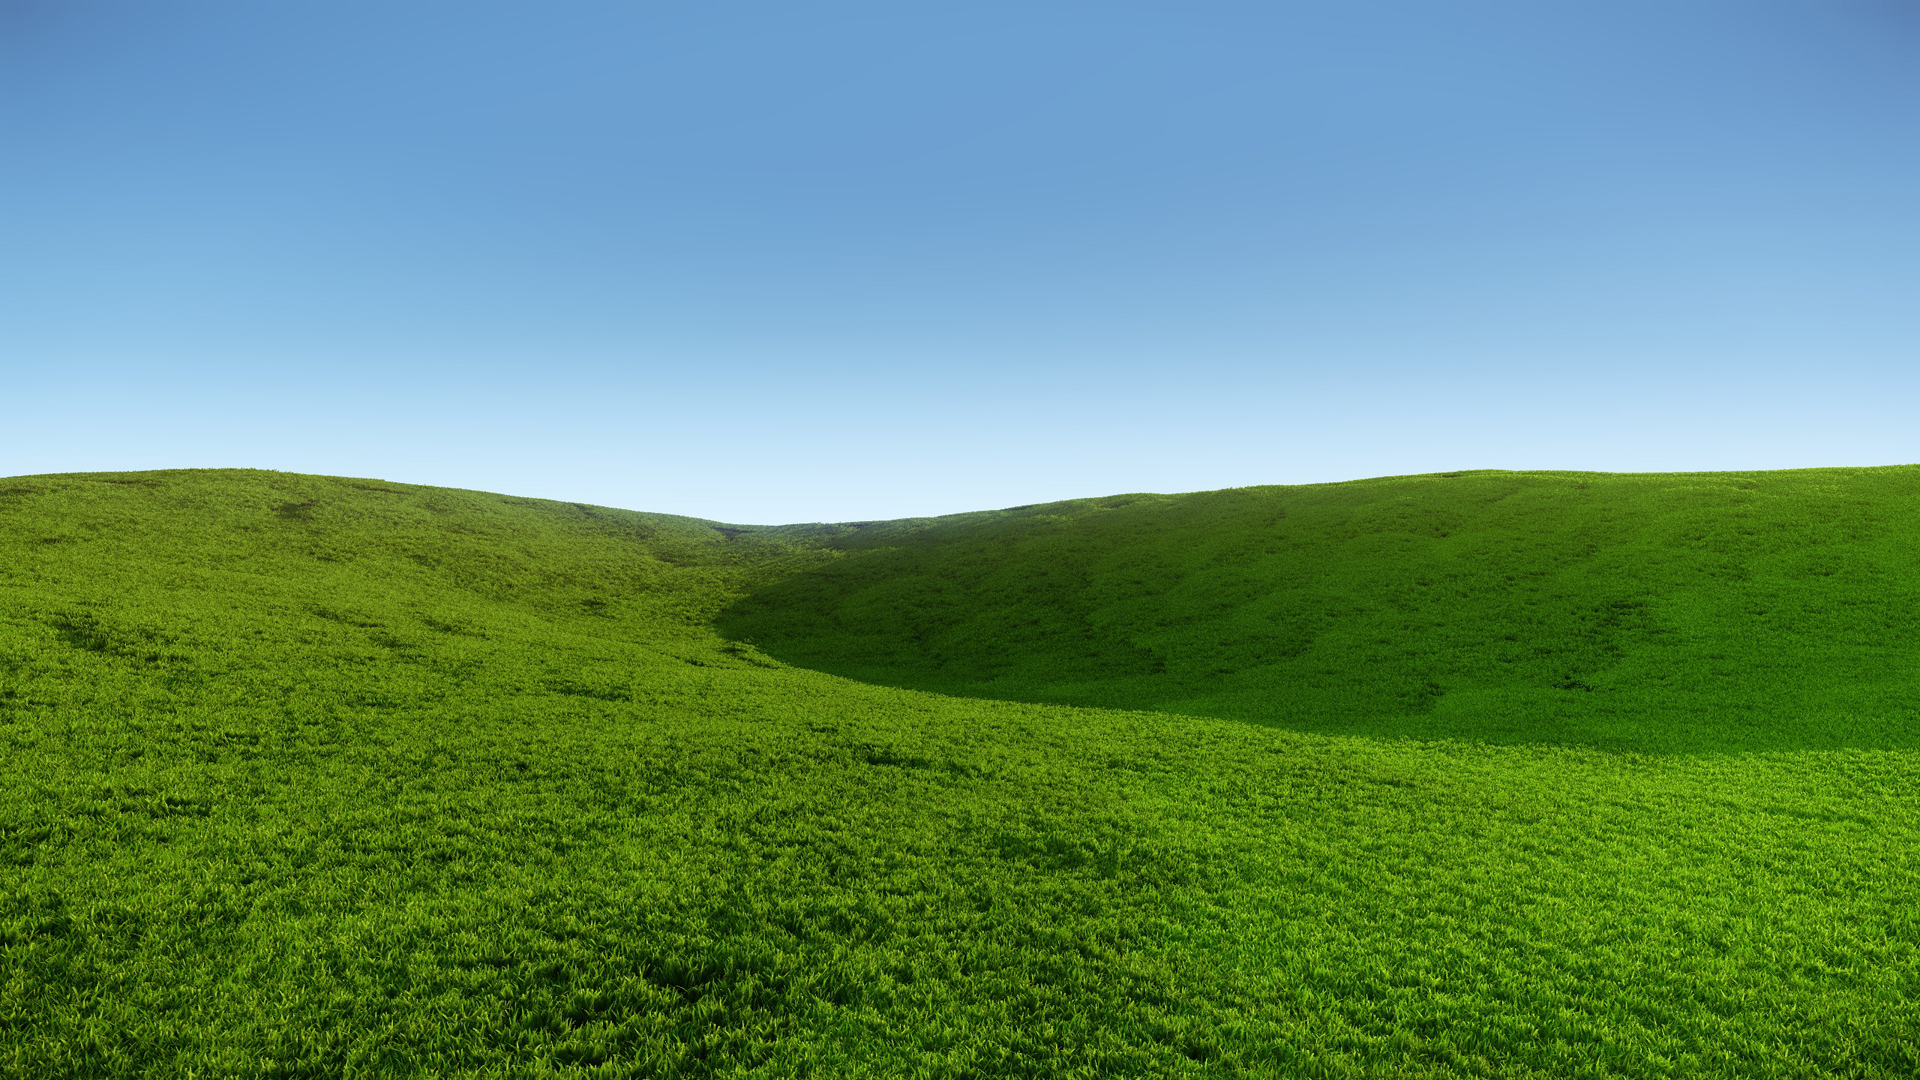 Grass Field - by the Grim image - CryENGINE Developers ...